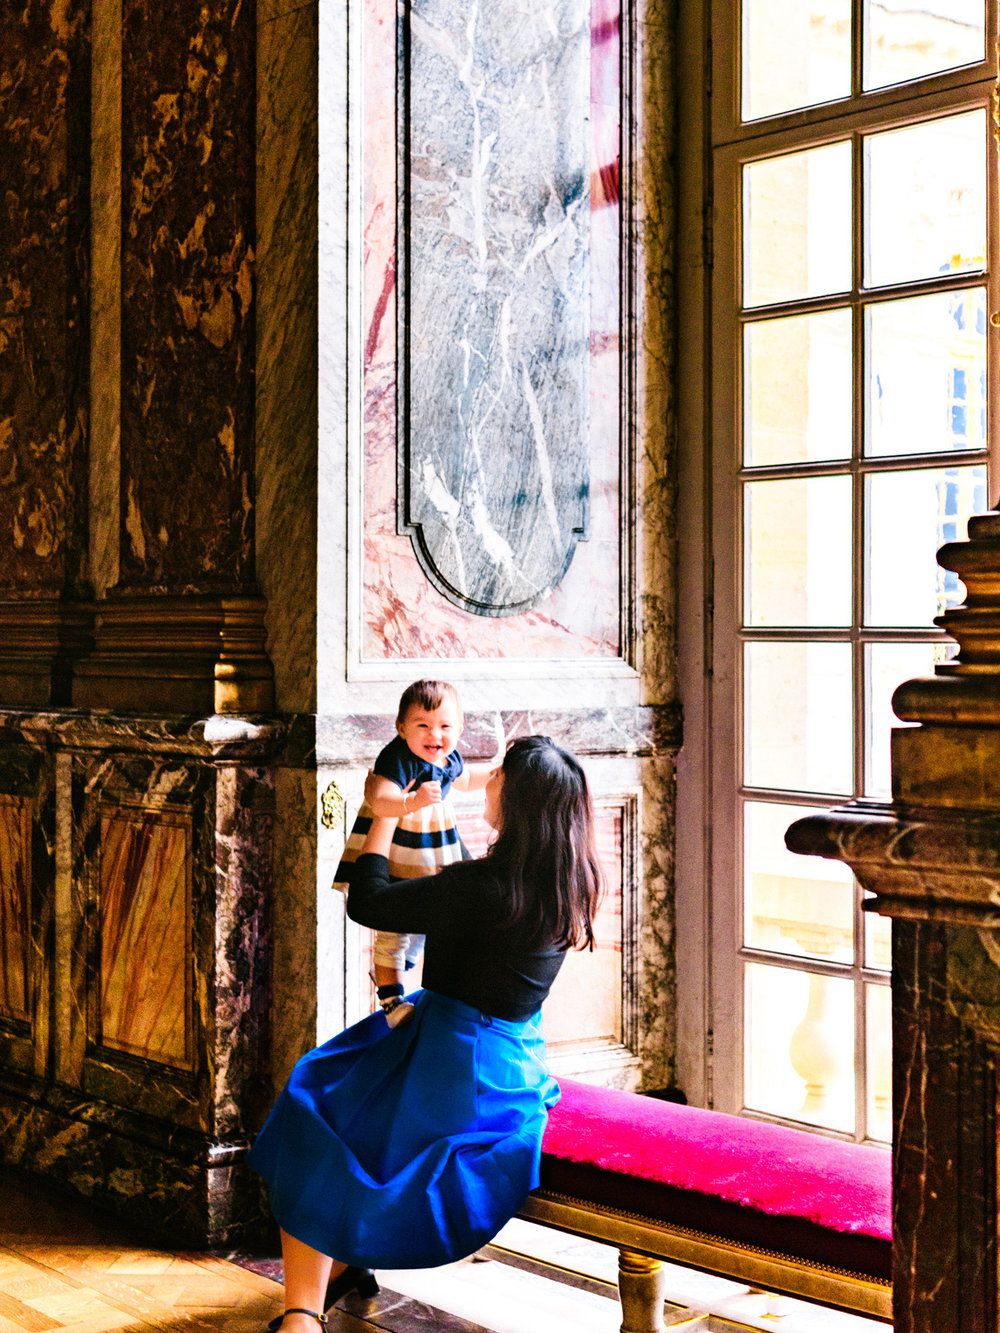 Playing with Lisa in the hall of mirrors in Versailles.